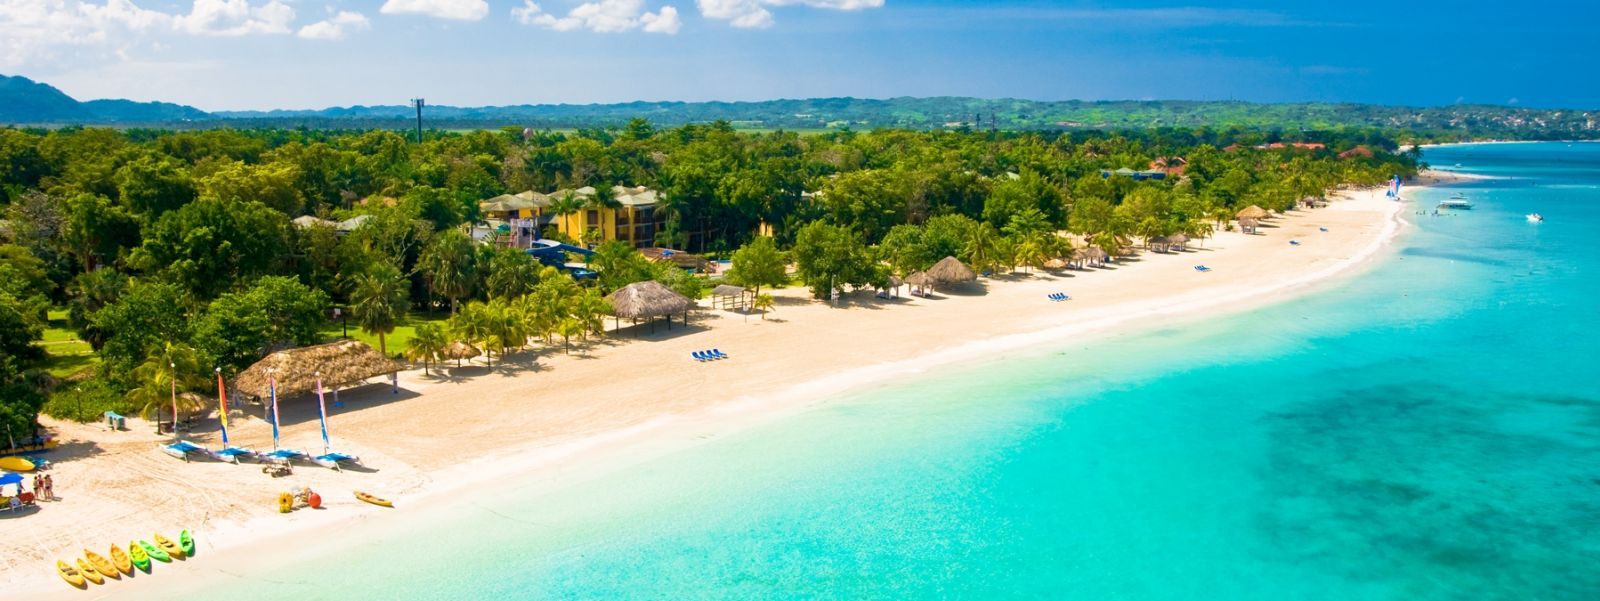 beaches-negril-resort-spa